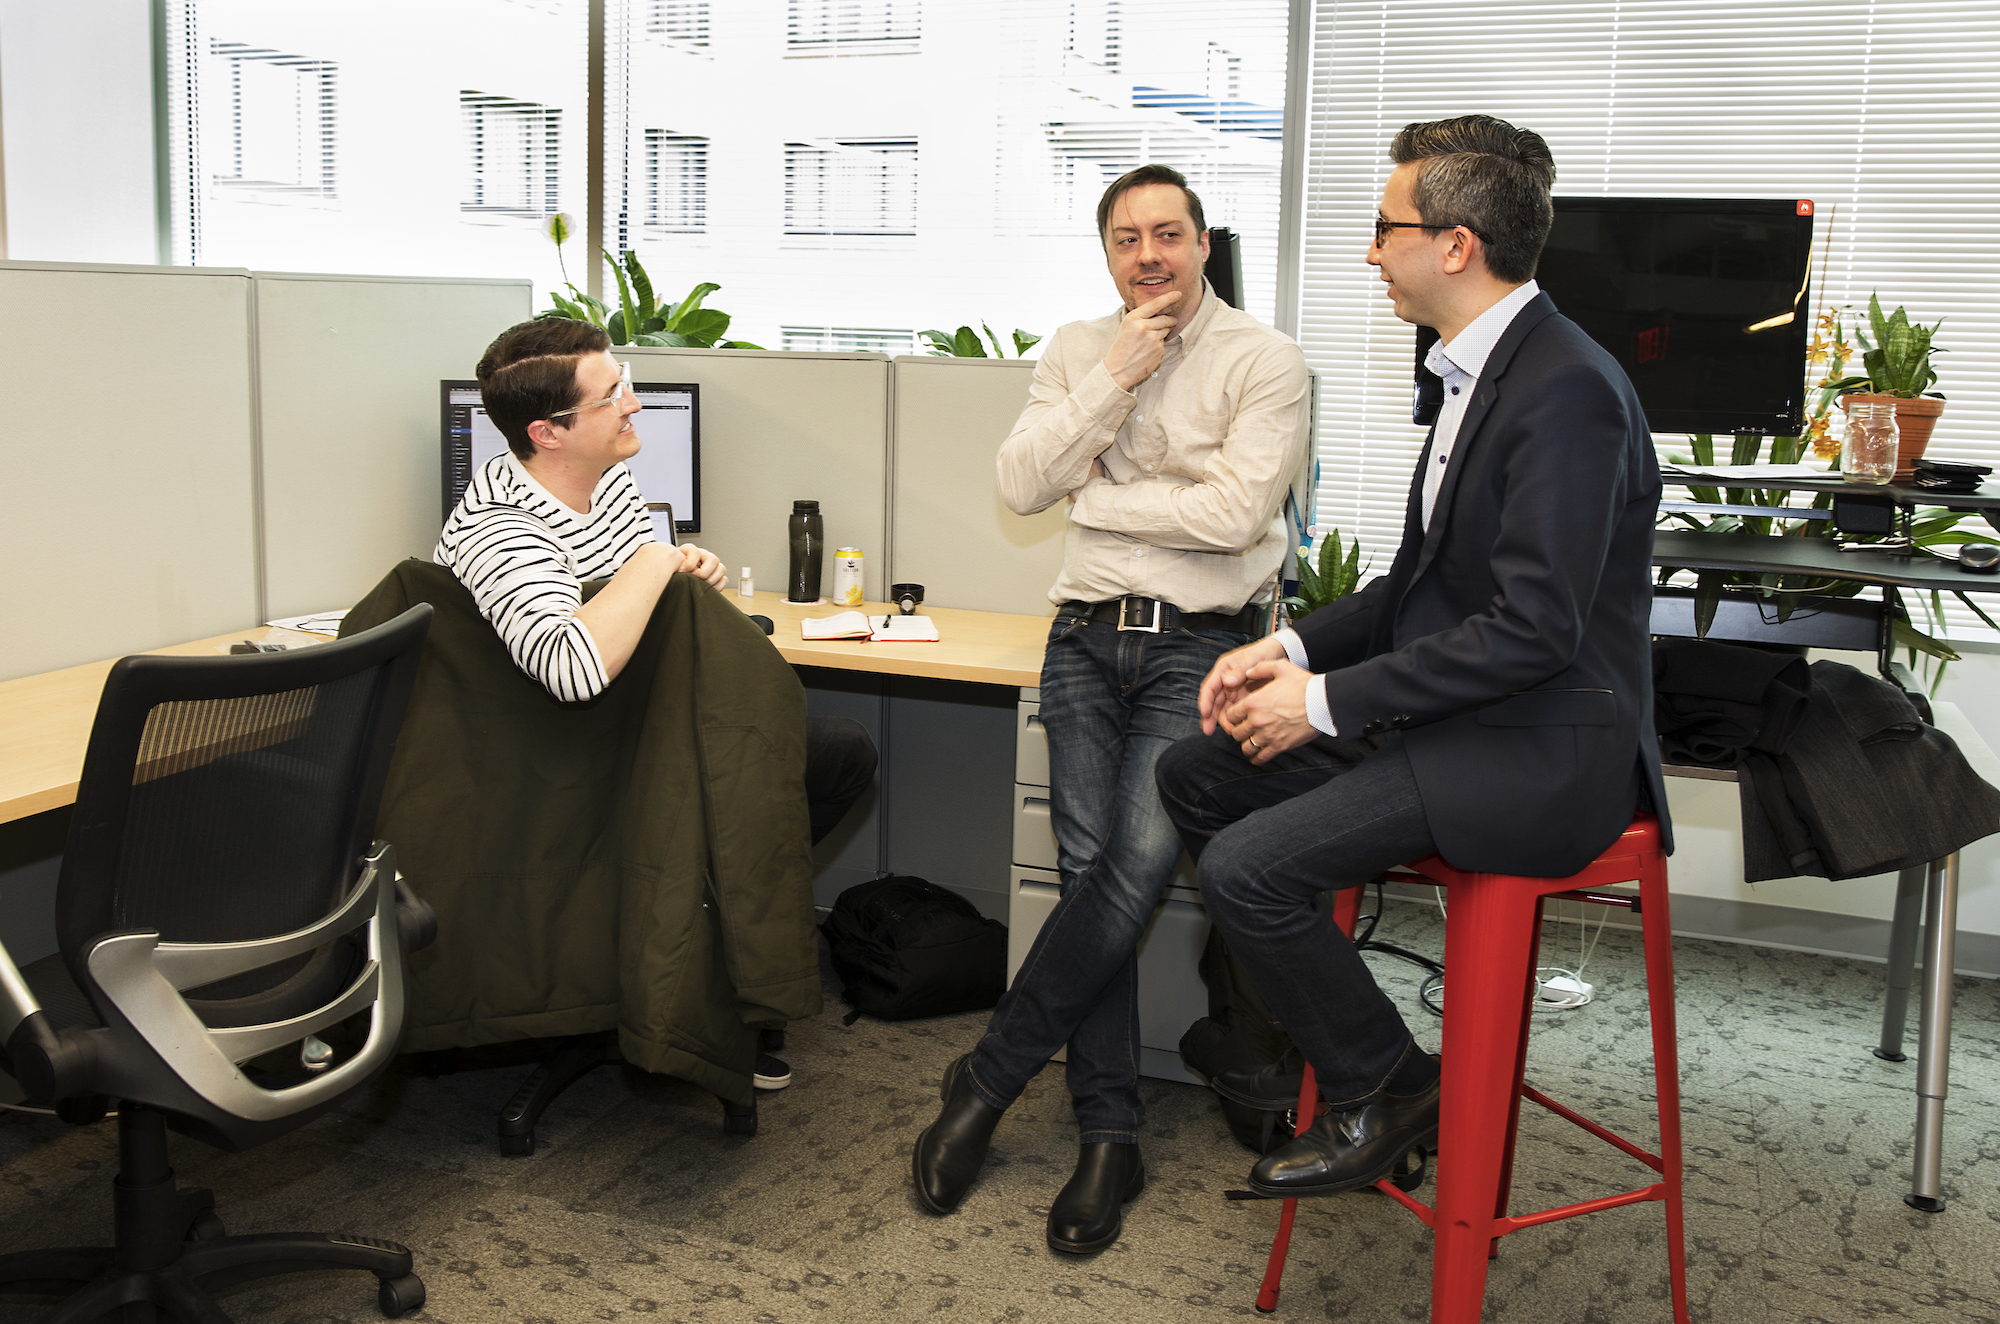 Social Driver CEO, Thomas Sanchez chats with two employees